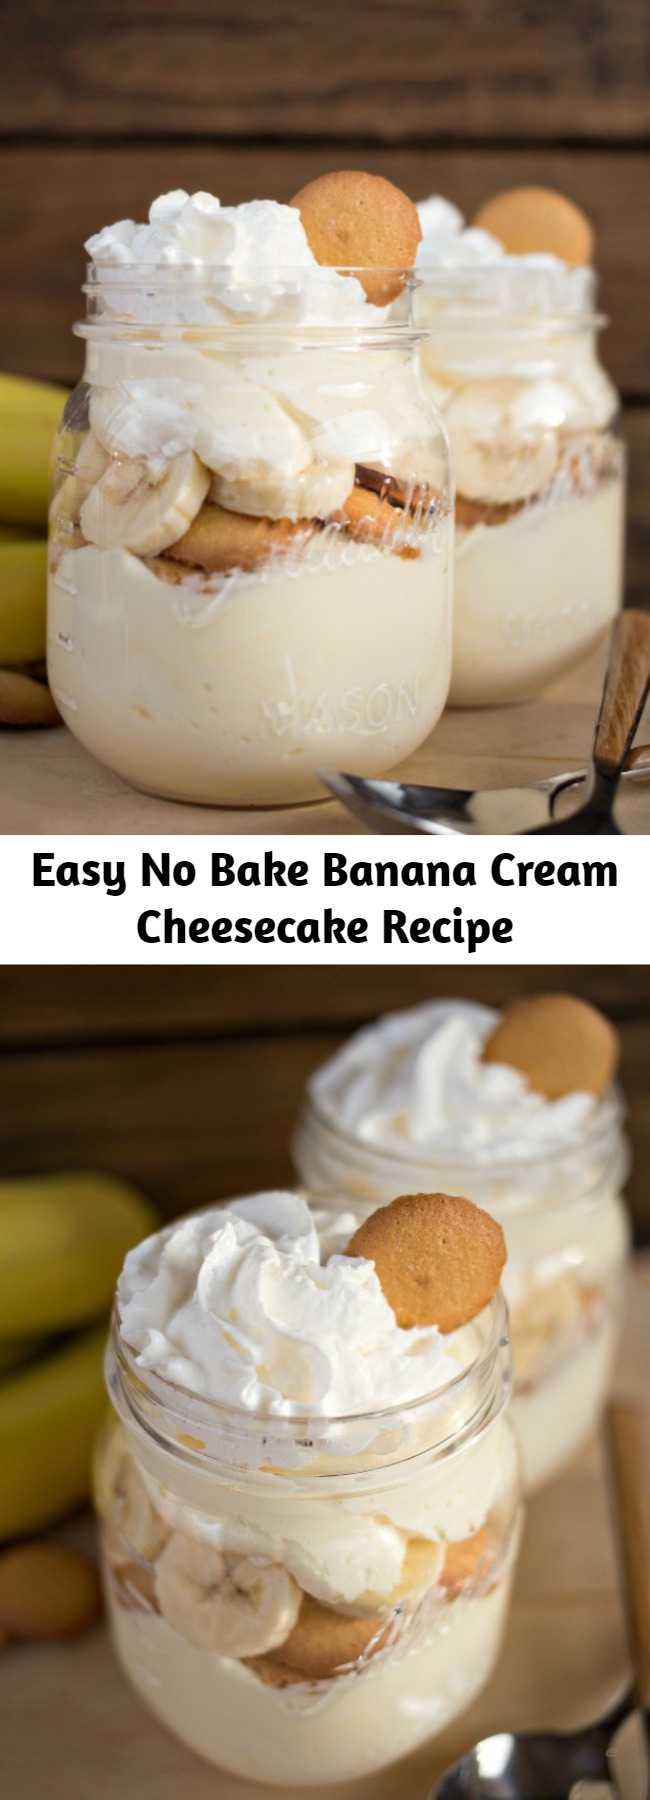 Easy No Bake Banana Cream Cheesecake Recipe - A delicious no-fuss, easy dessert that will have you enjoying your favorite Banana Cream Pie flavors in just minutes!